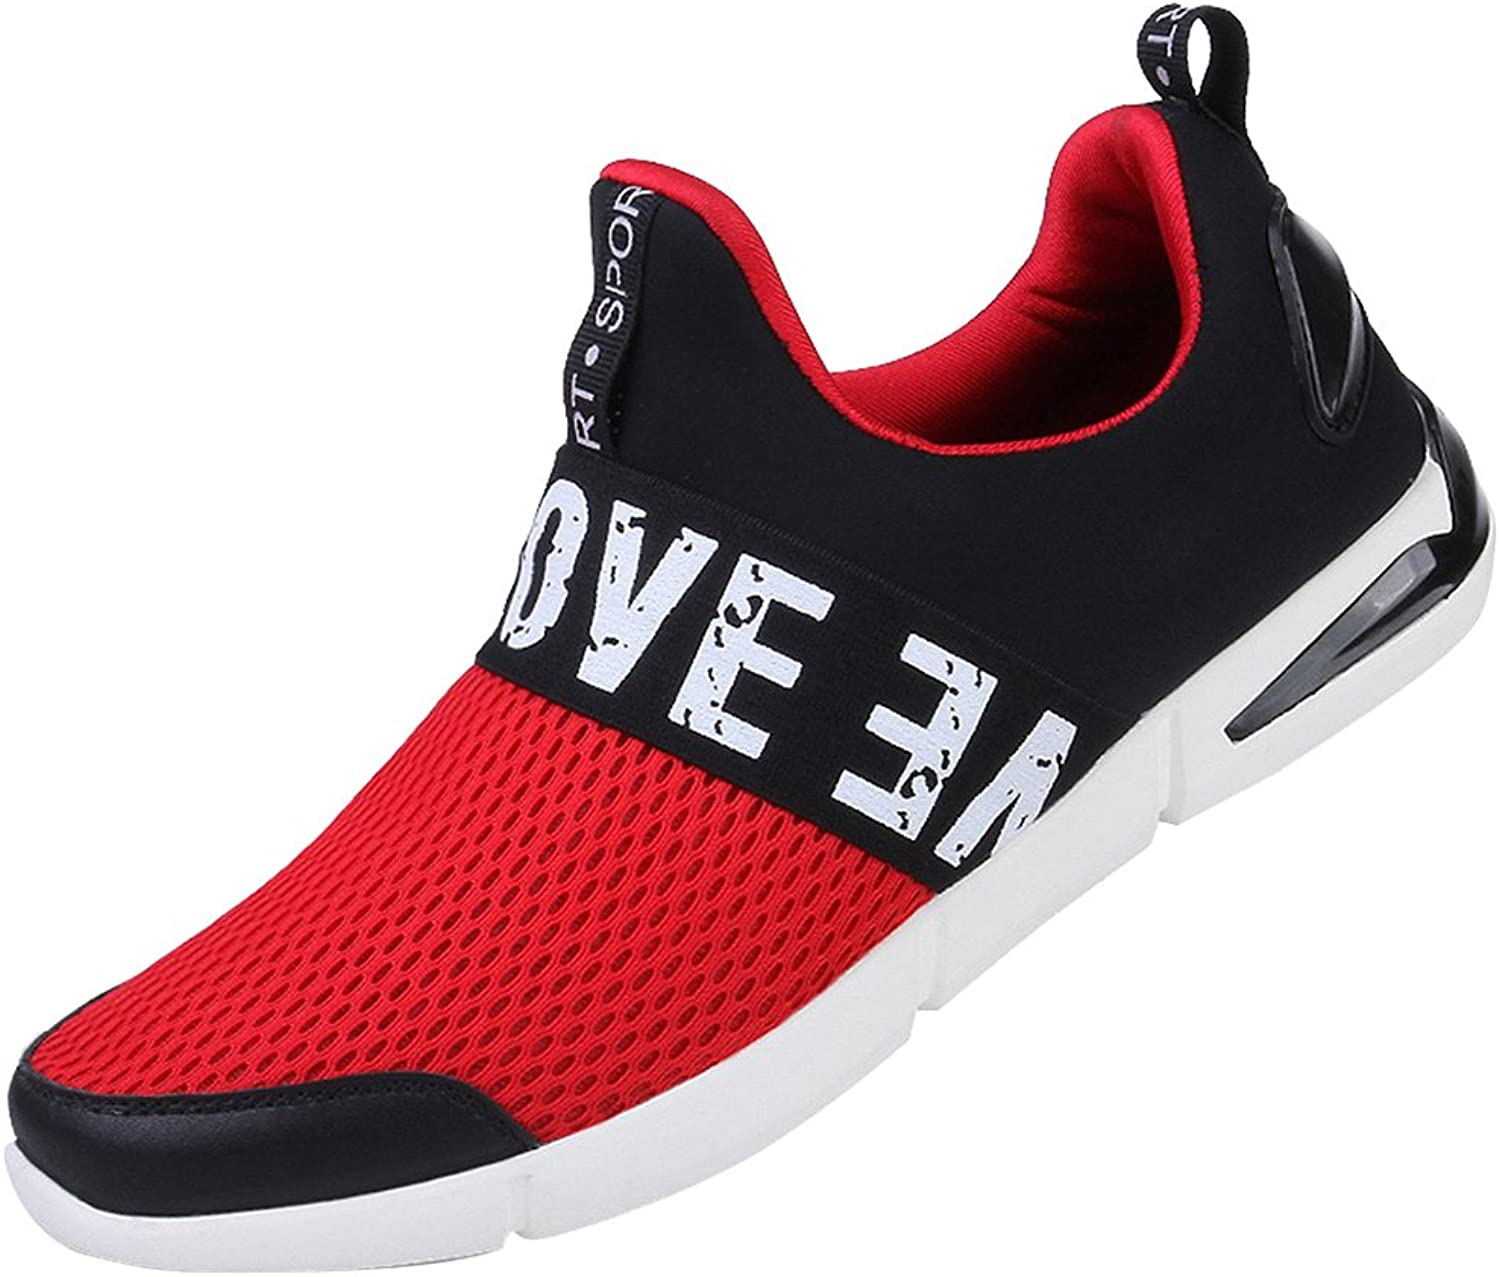 Snowman Lee Men Lightweight Fashion Mesh Sneakers Slip On Breathable Athletic Casual Sports Running shoes